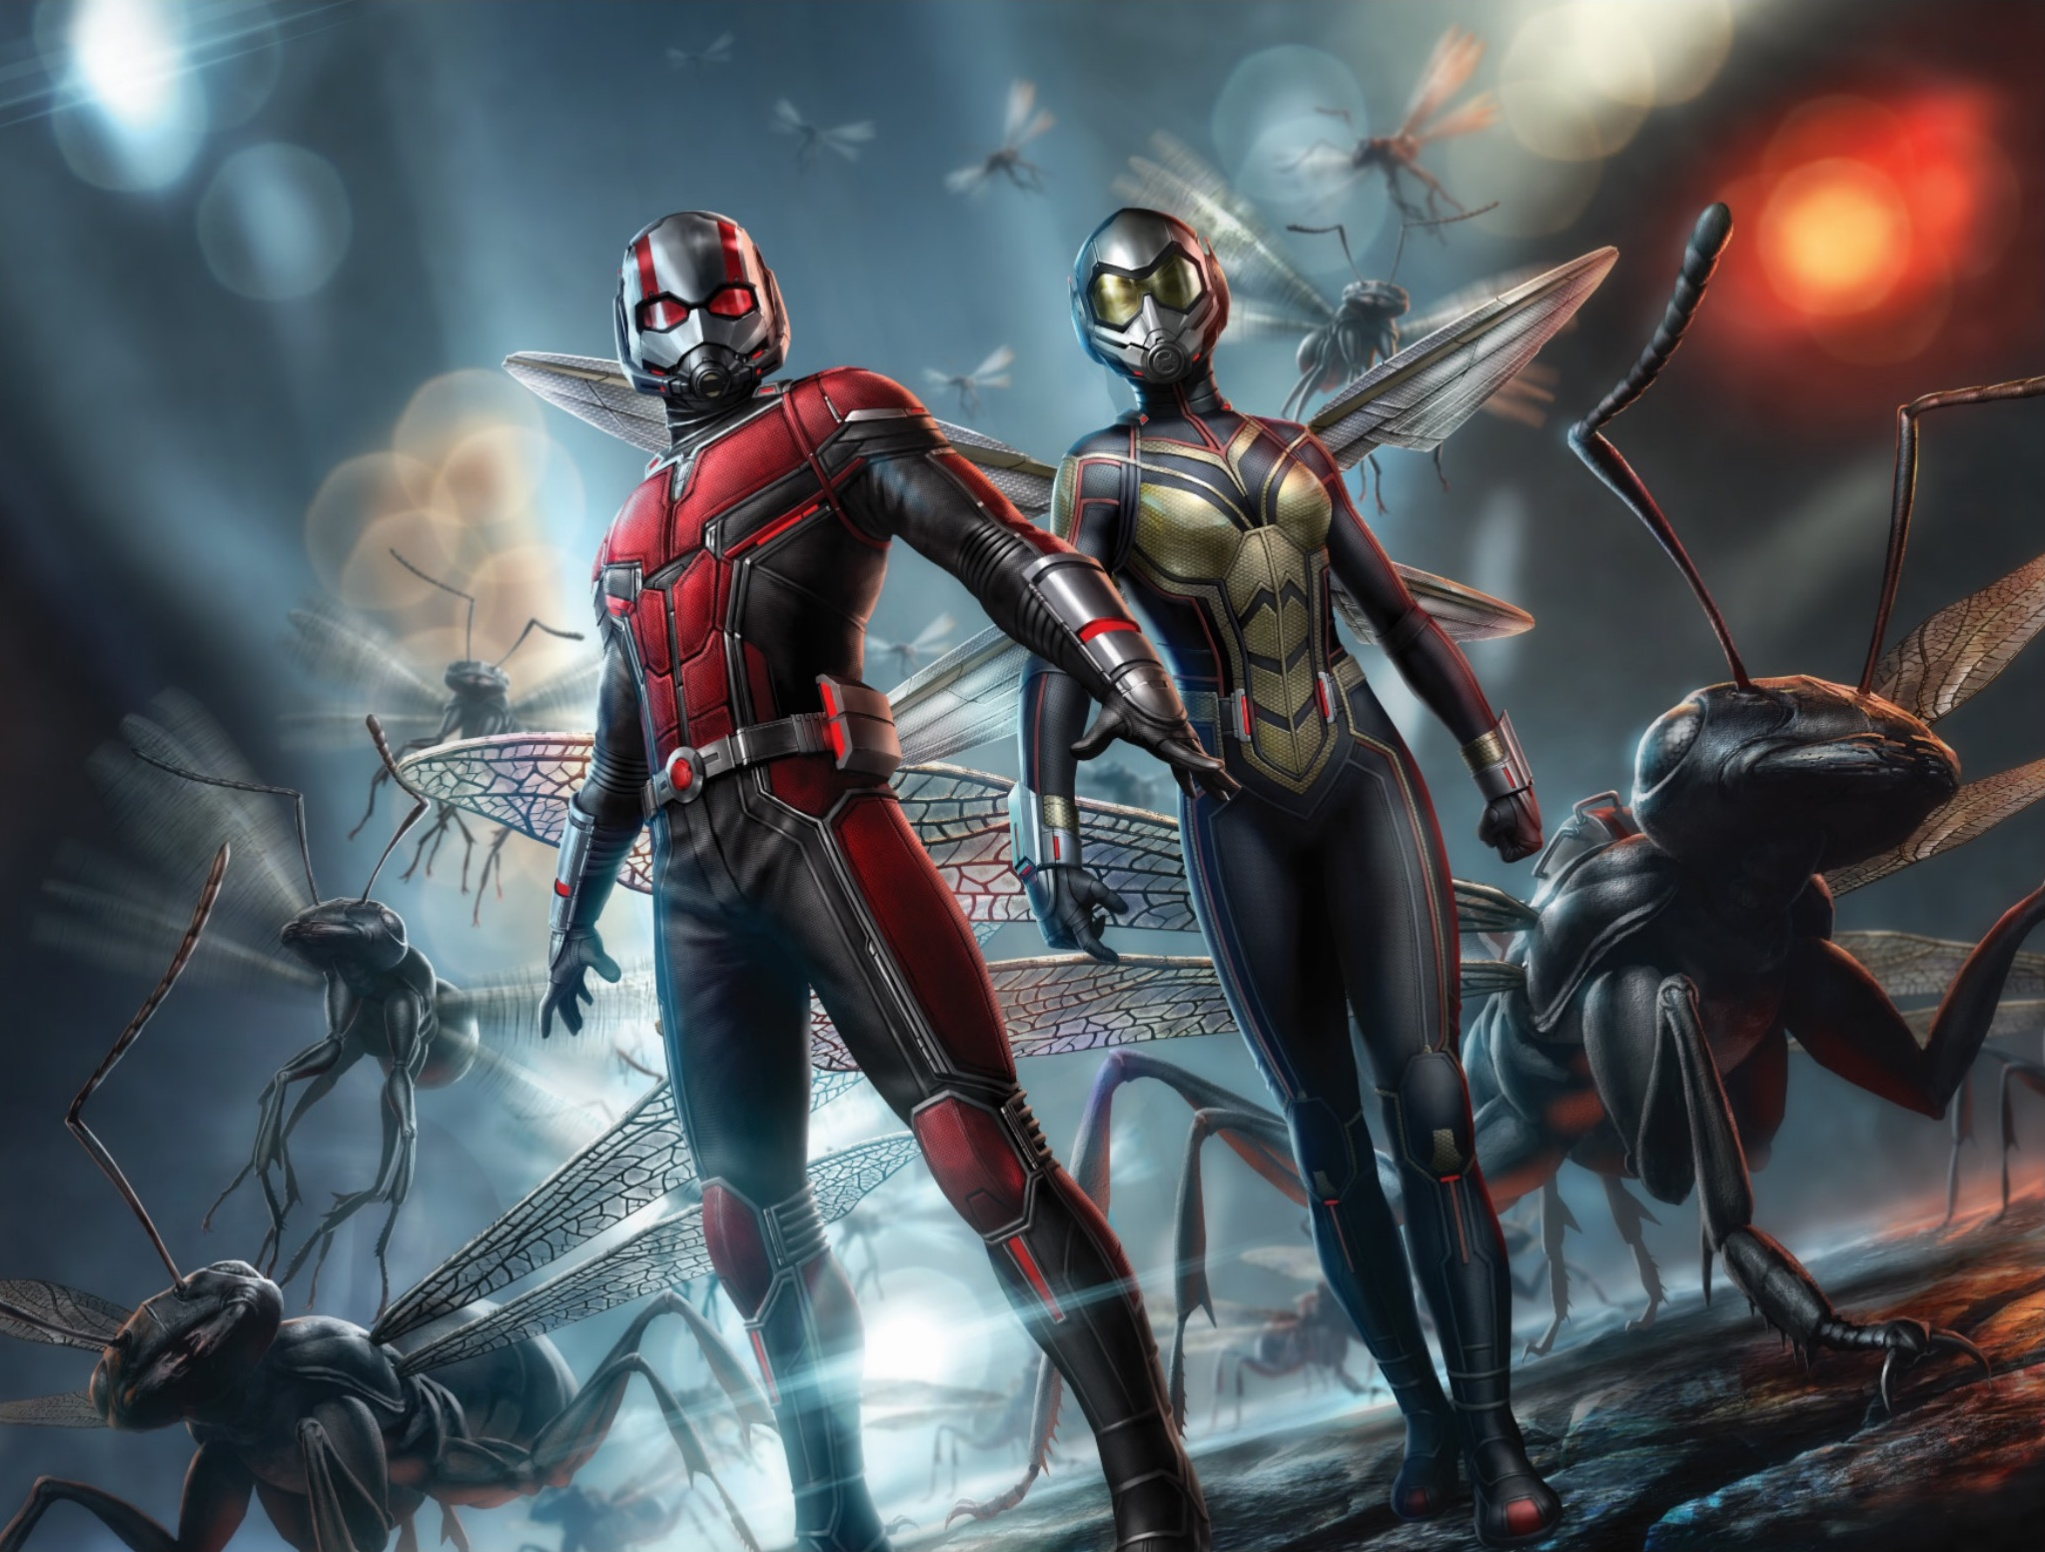 Ant-Man-and-the-Wasp-art-1.jpg